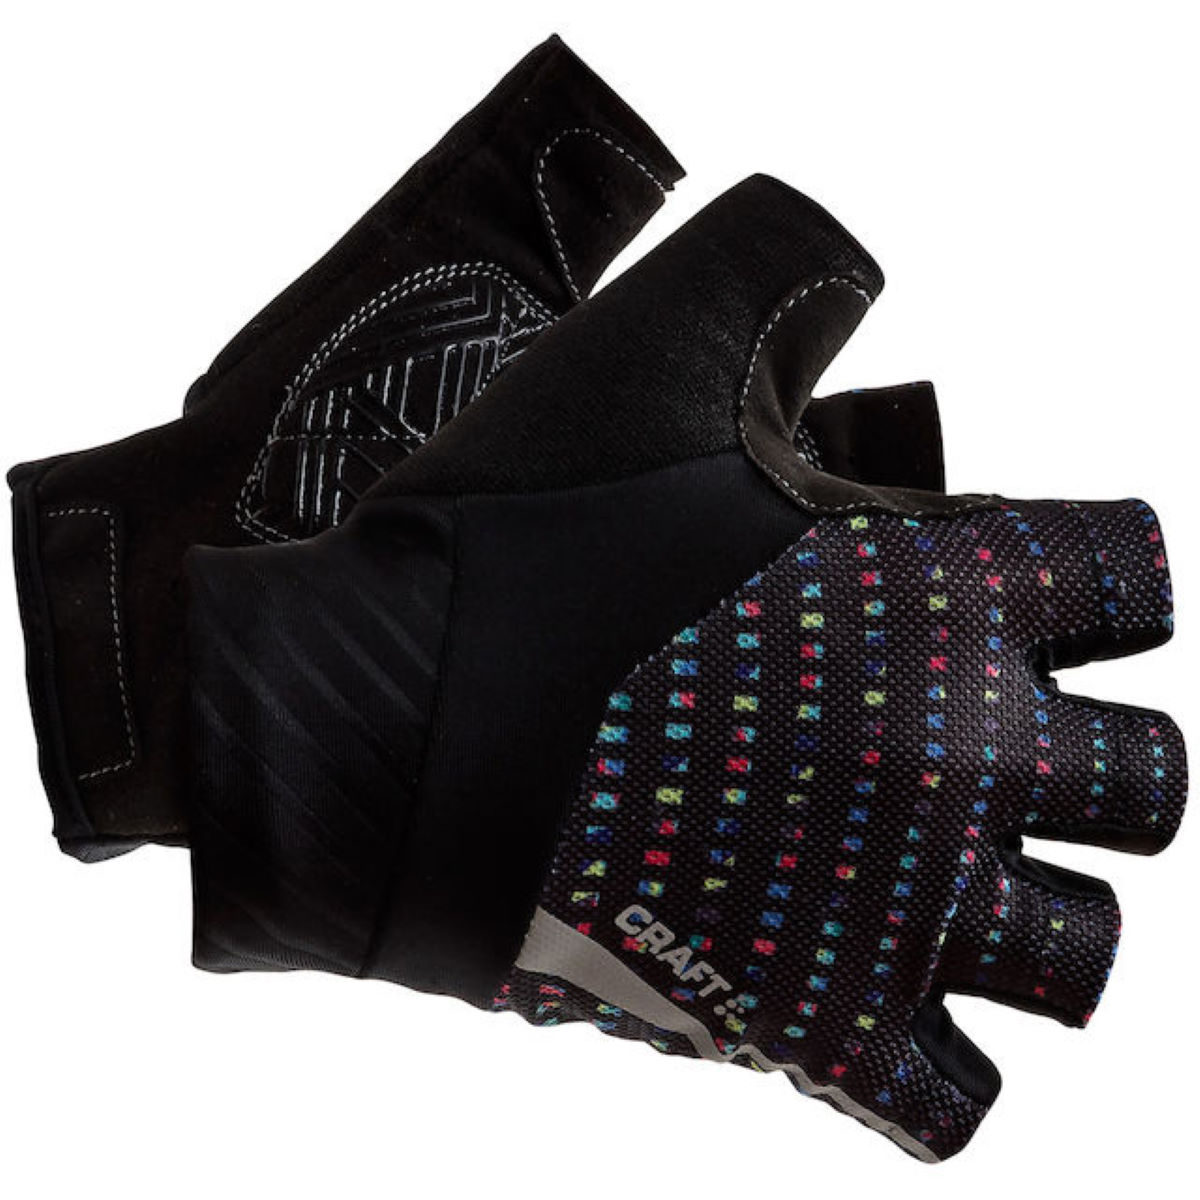 Craft Rouleur Gloves   Gloves